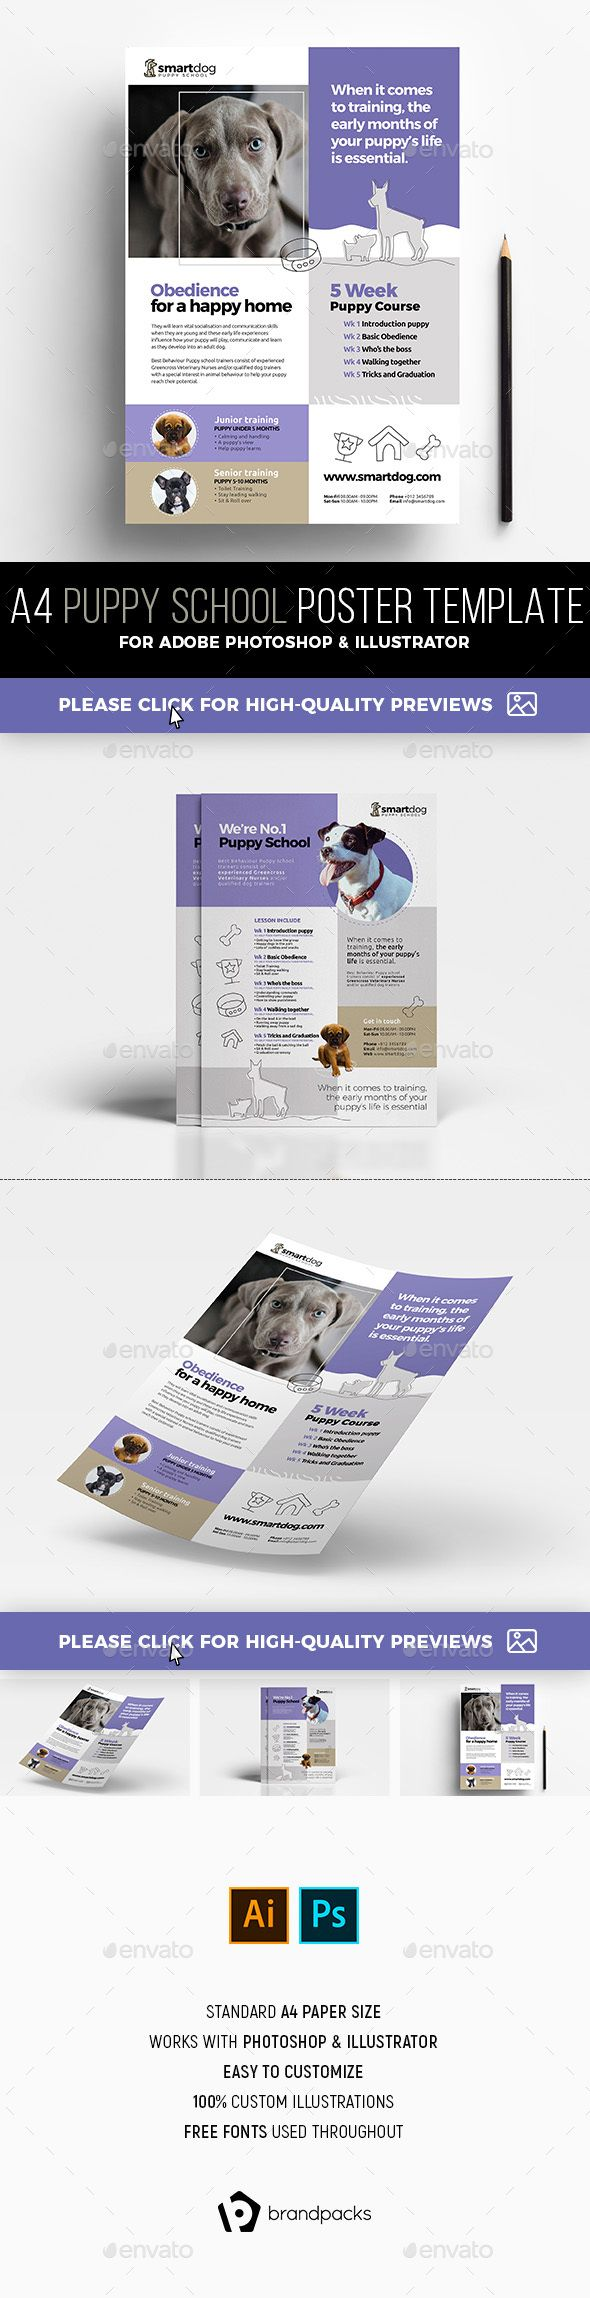 #A4 Puppy School Poster Templates - #Commerce #Flyers